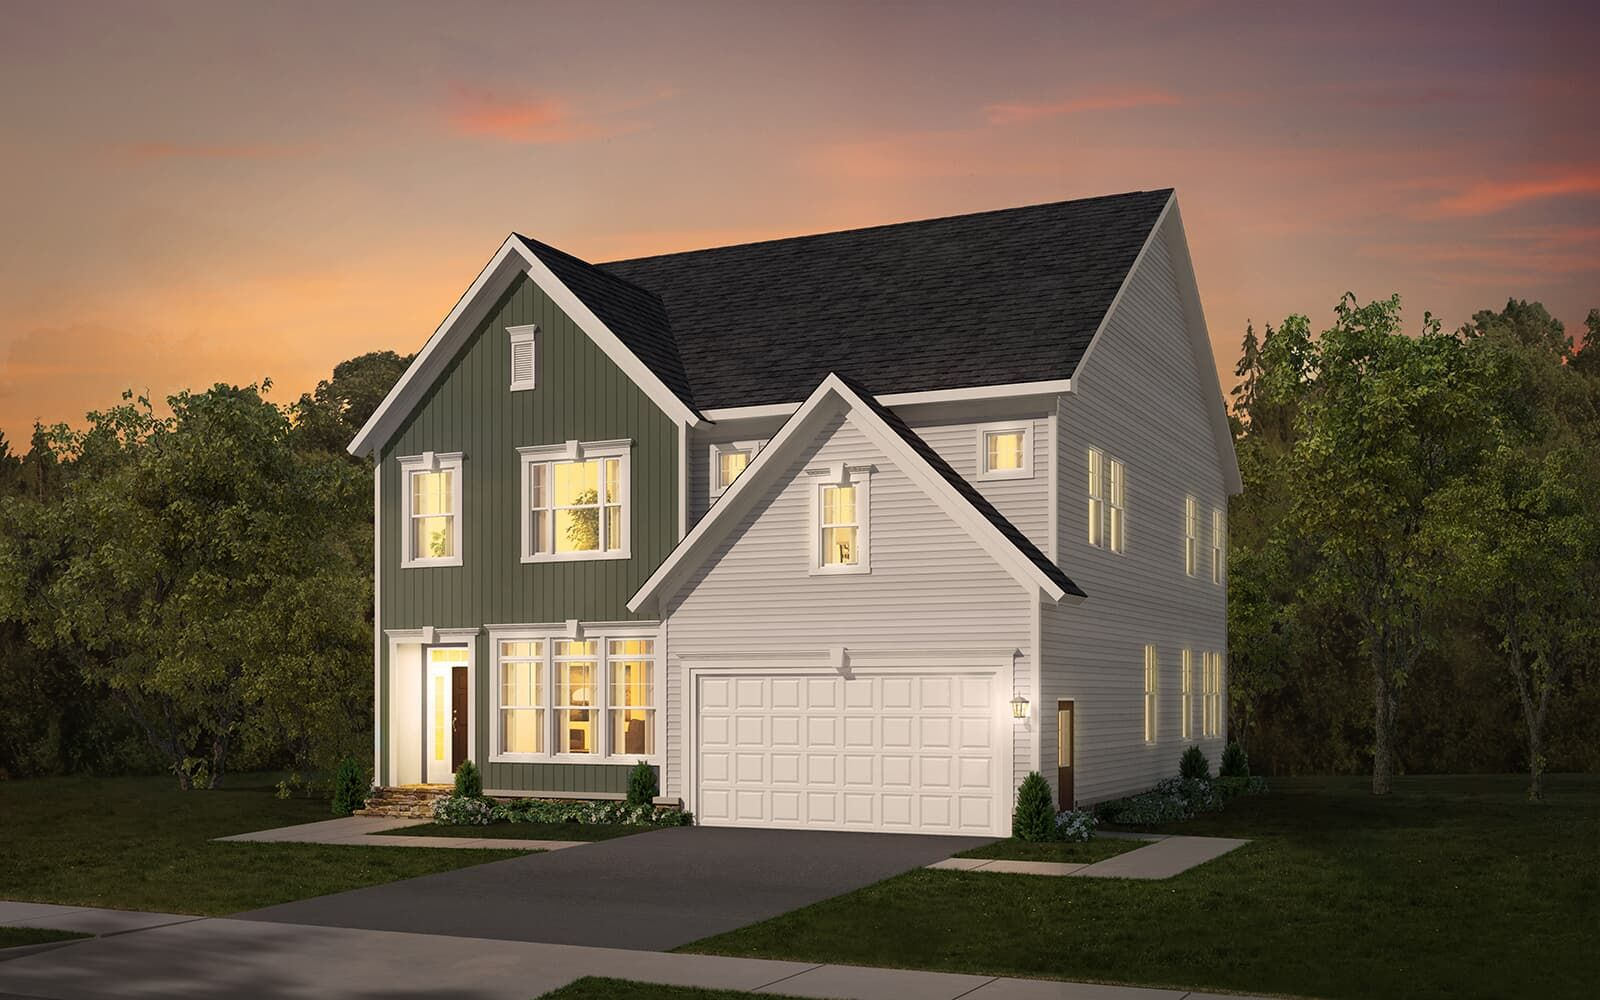 Exterior:Elevation 1 of the Beckner a home design by Brookfield Residential at Snowden Bridge.